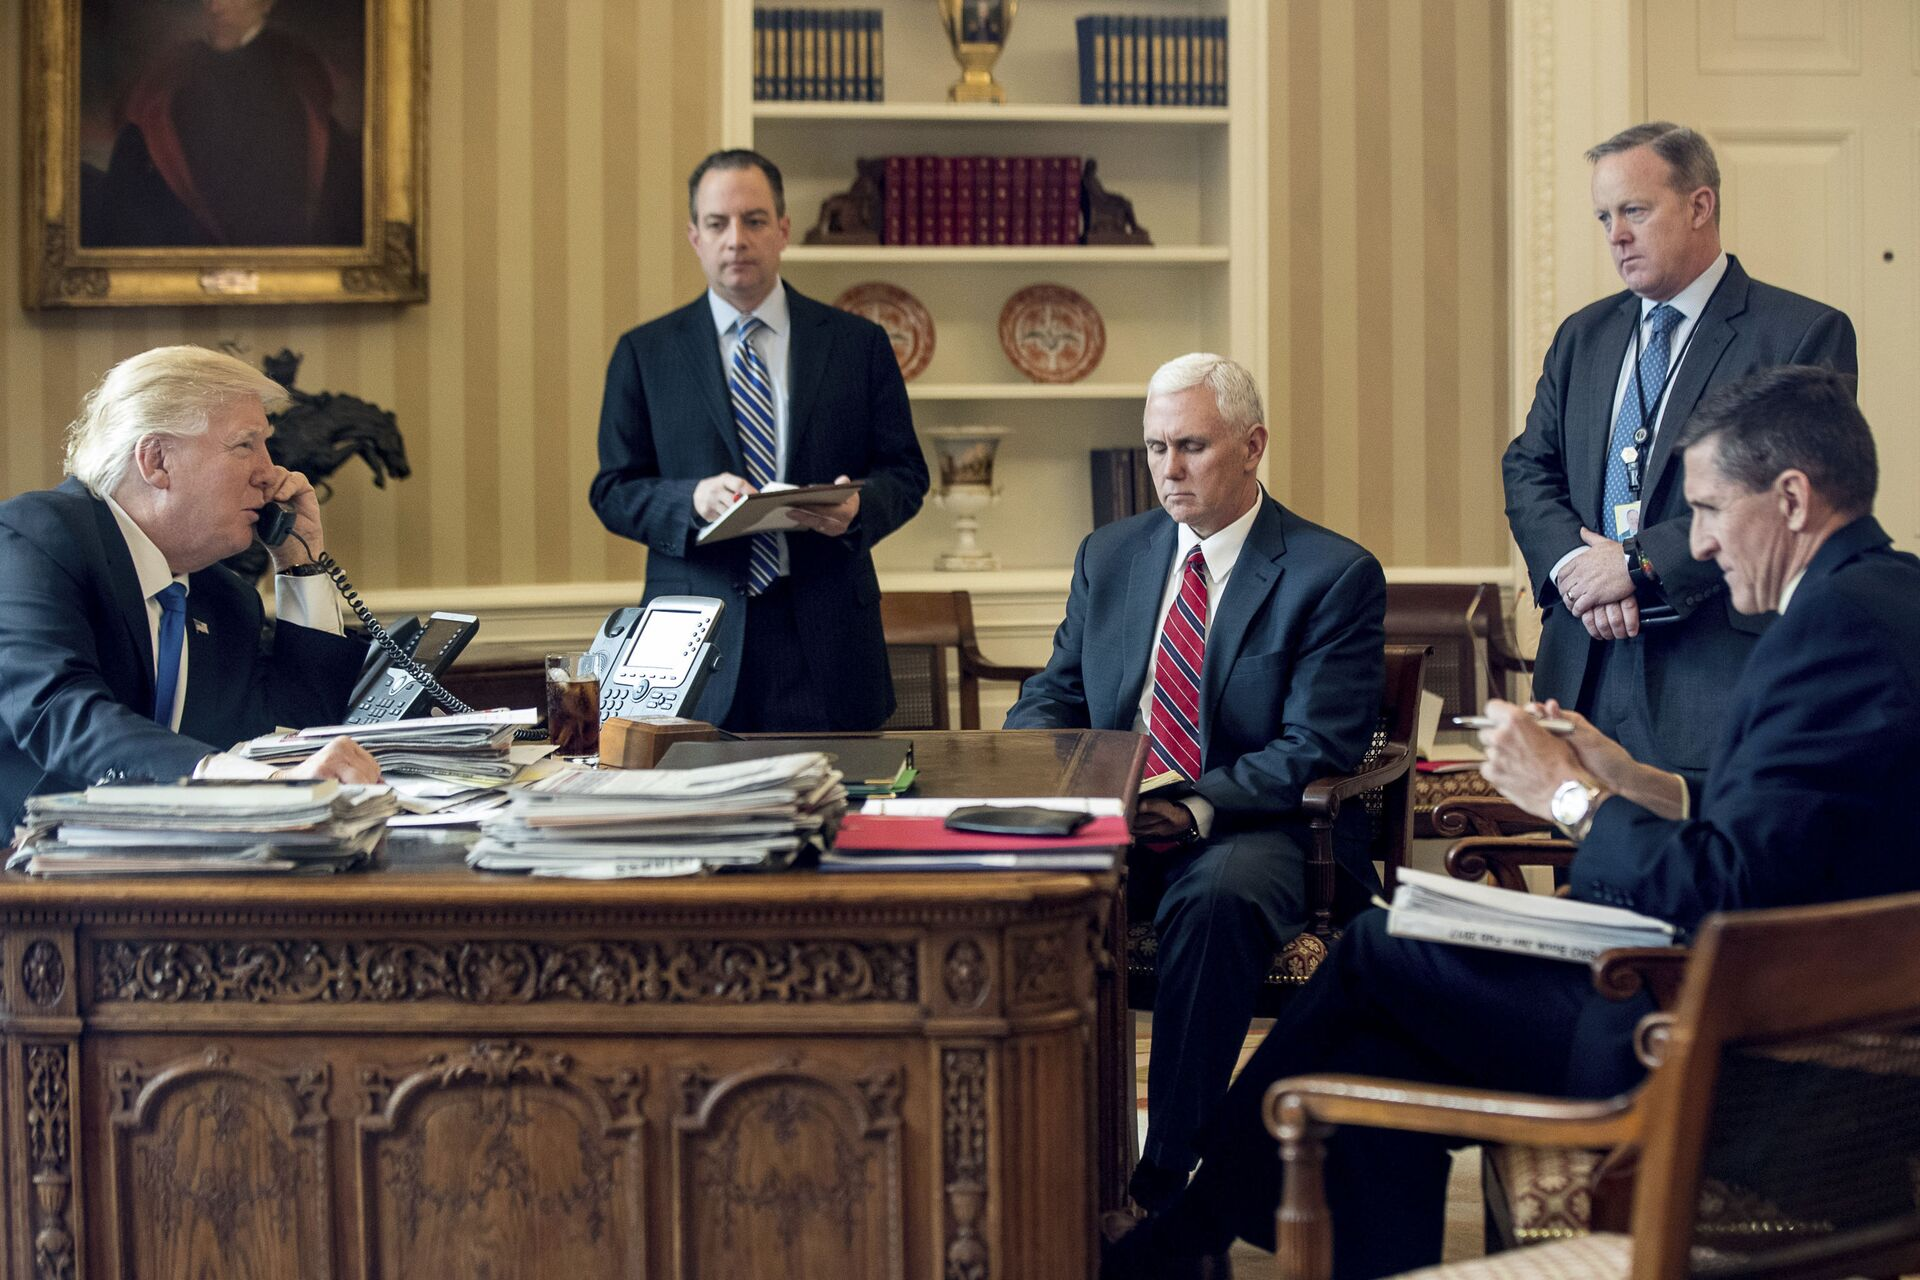 In this Jan. 28, 2017, file photo, President Donald Trump accompanied by, from second from left, Chief of Staff Reince Priebus, Vice President Mike Pence, White House press secretary Sean Spicer and National Security Adviser Michael Flynn speaks on the phone with Russian President Vladimir Putin in the Oval Office at the White House in Washington - Sputnik International, 1920, 07.09.2021